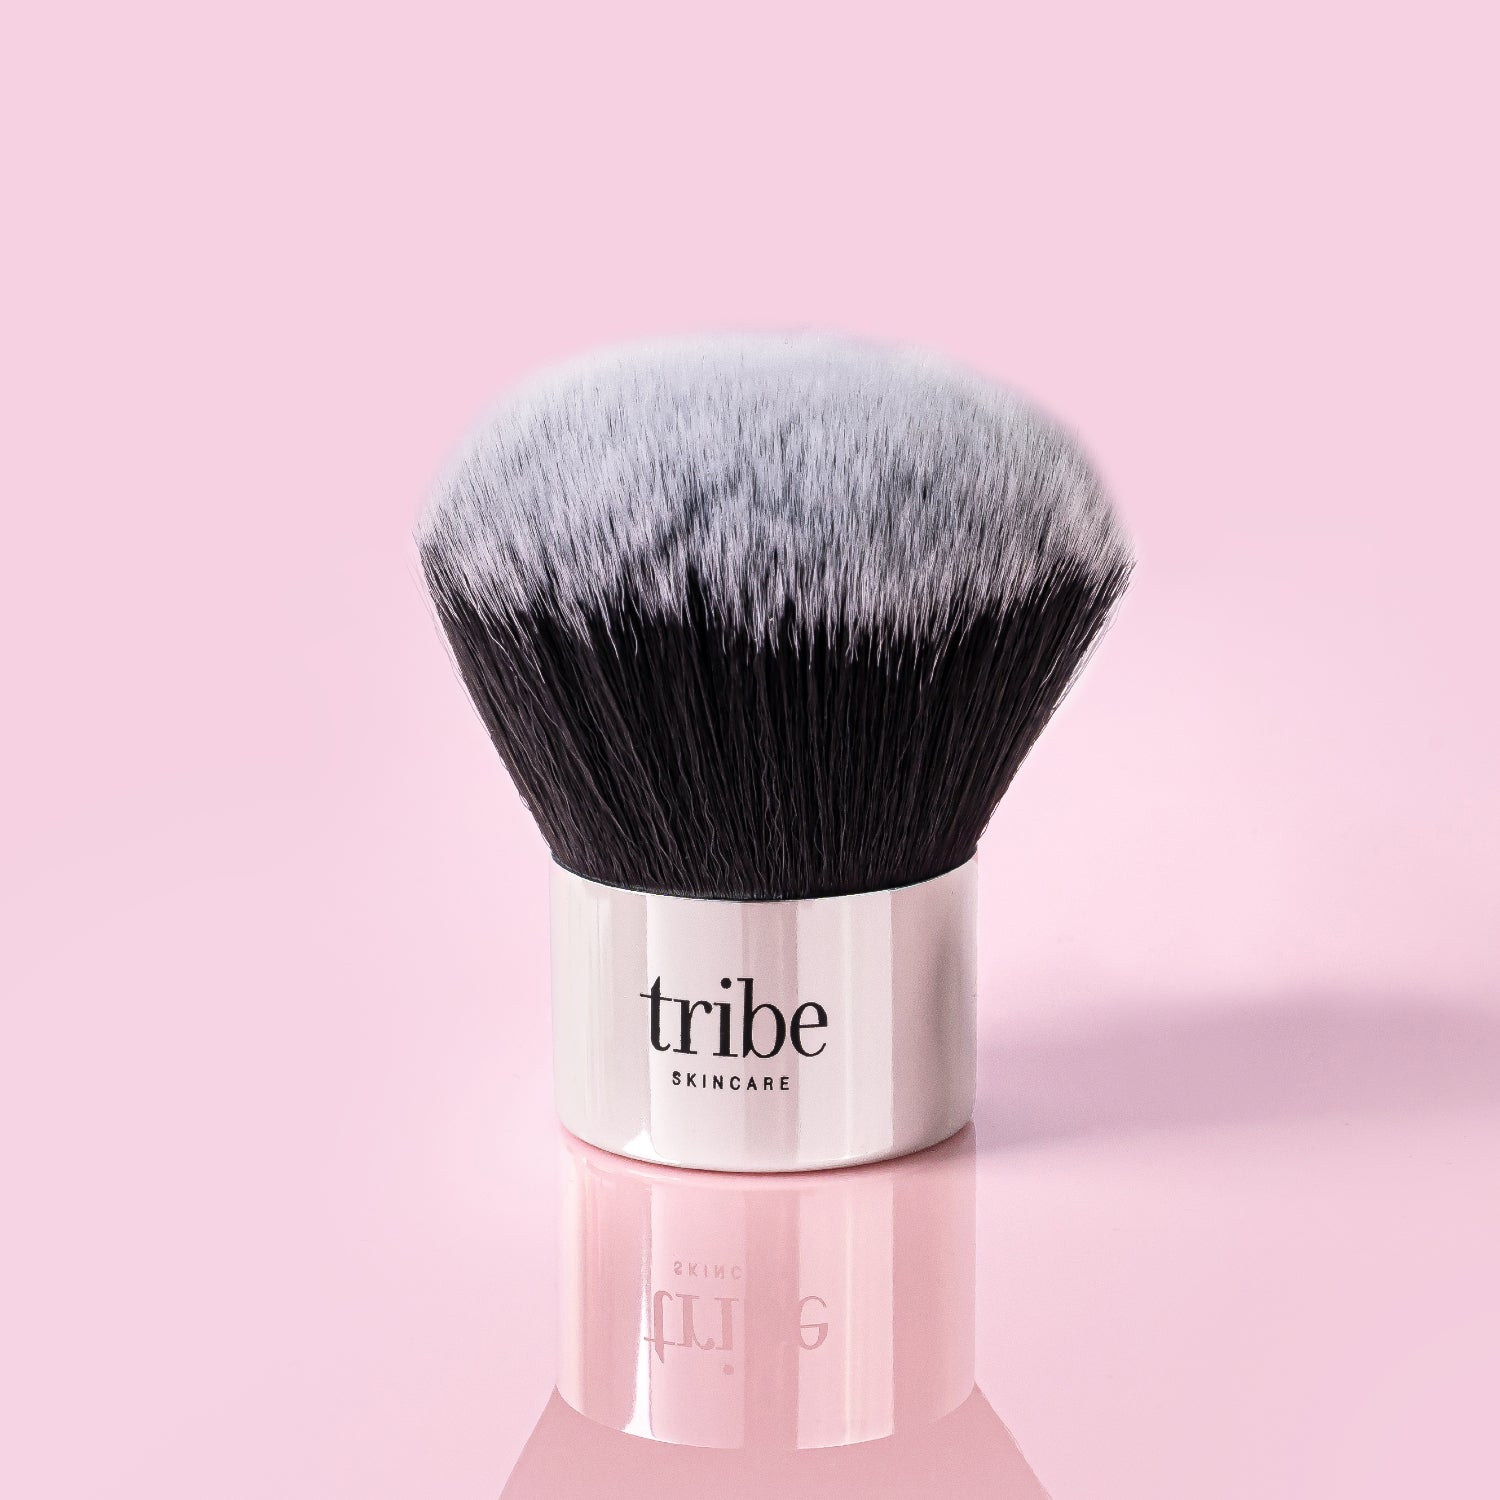 Tribe Skincare for sensitive skin Perfect Finish Mineral Foundation Brush